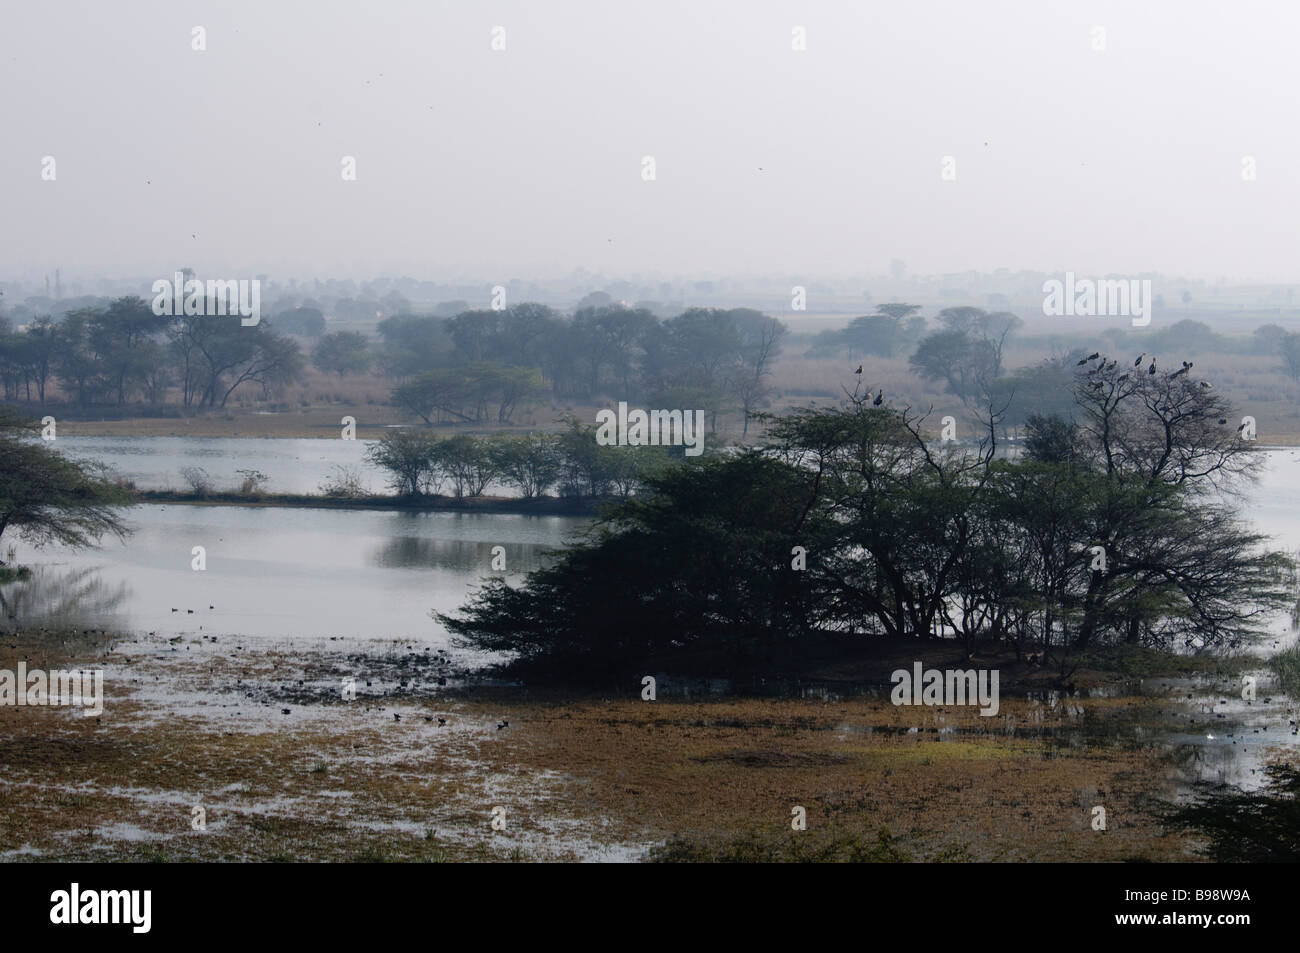 A sight of wetlands in Sultanpur Bird Sanctuary India - Stock Image